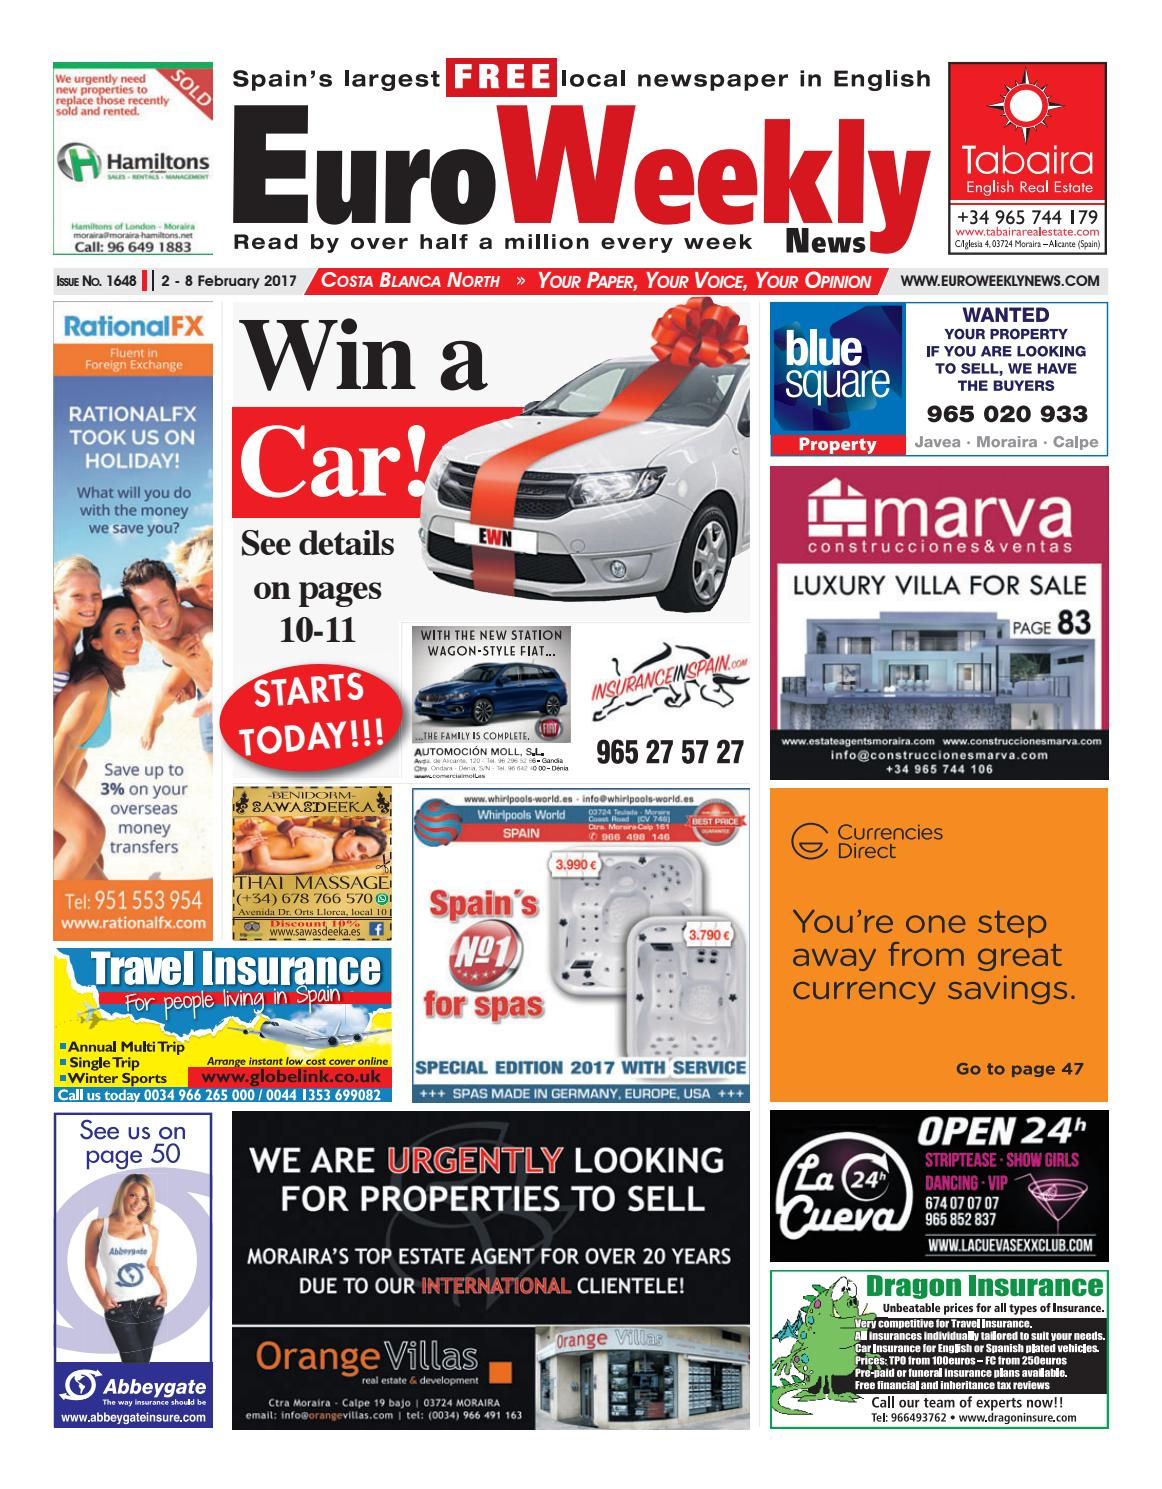 Amanecer Porn Family euro weekly news - costa blanca north 2 - 8 february 2017